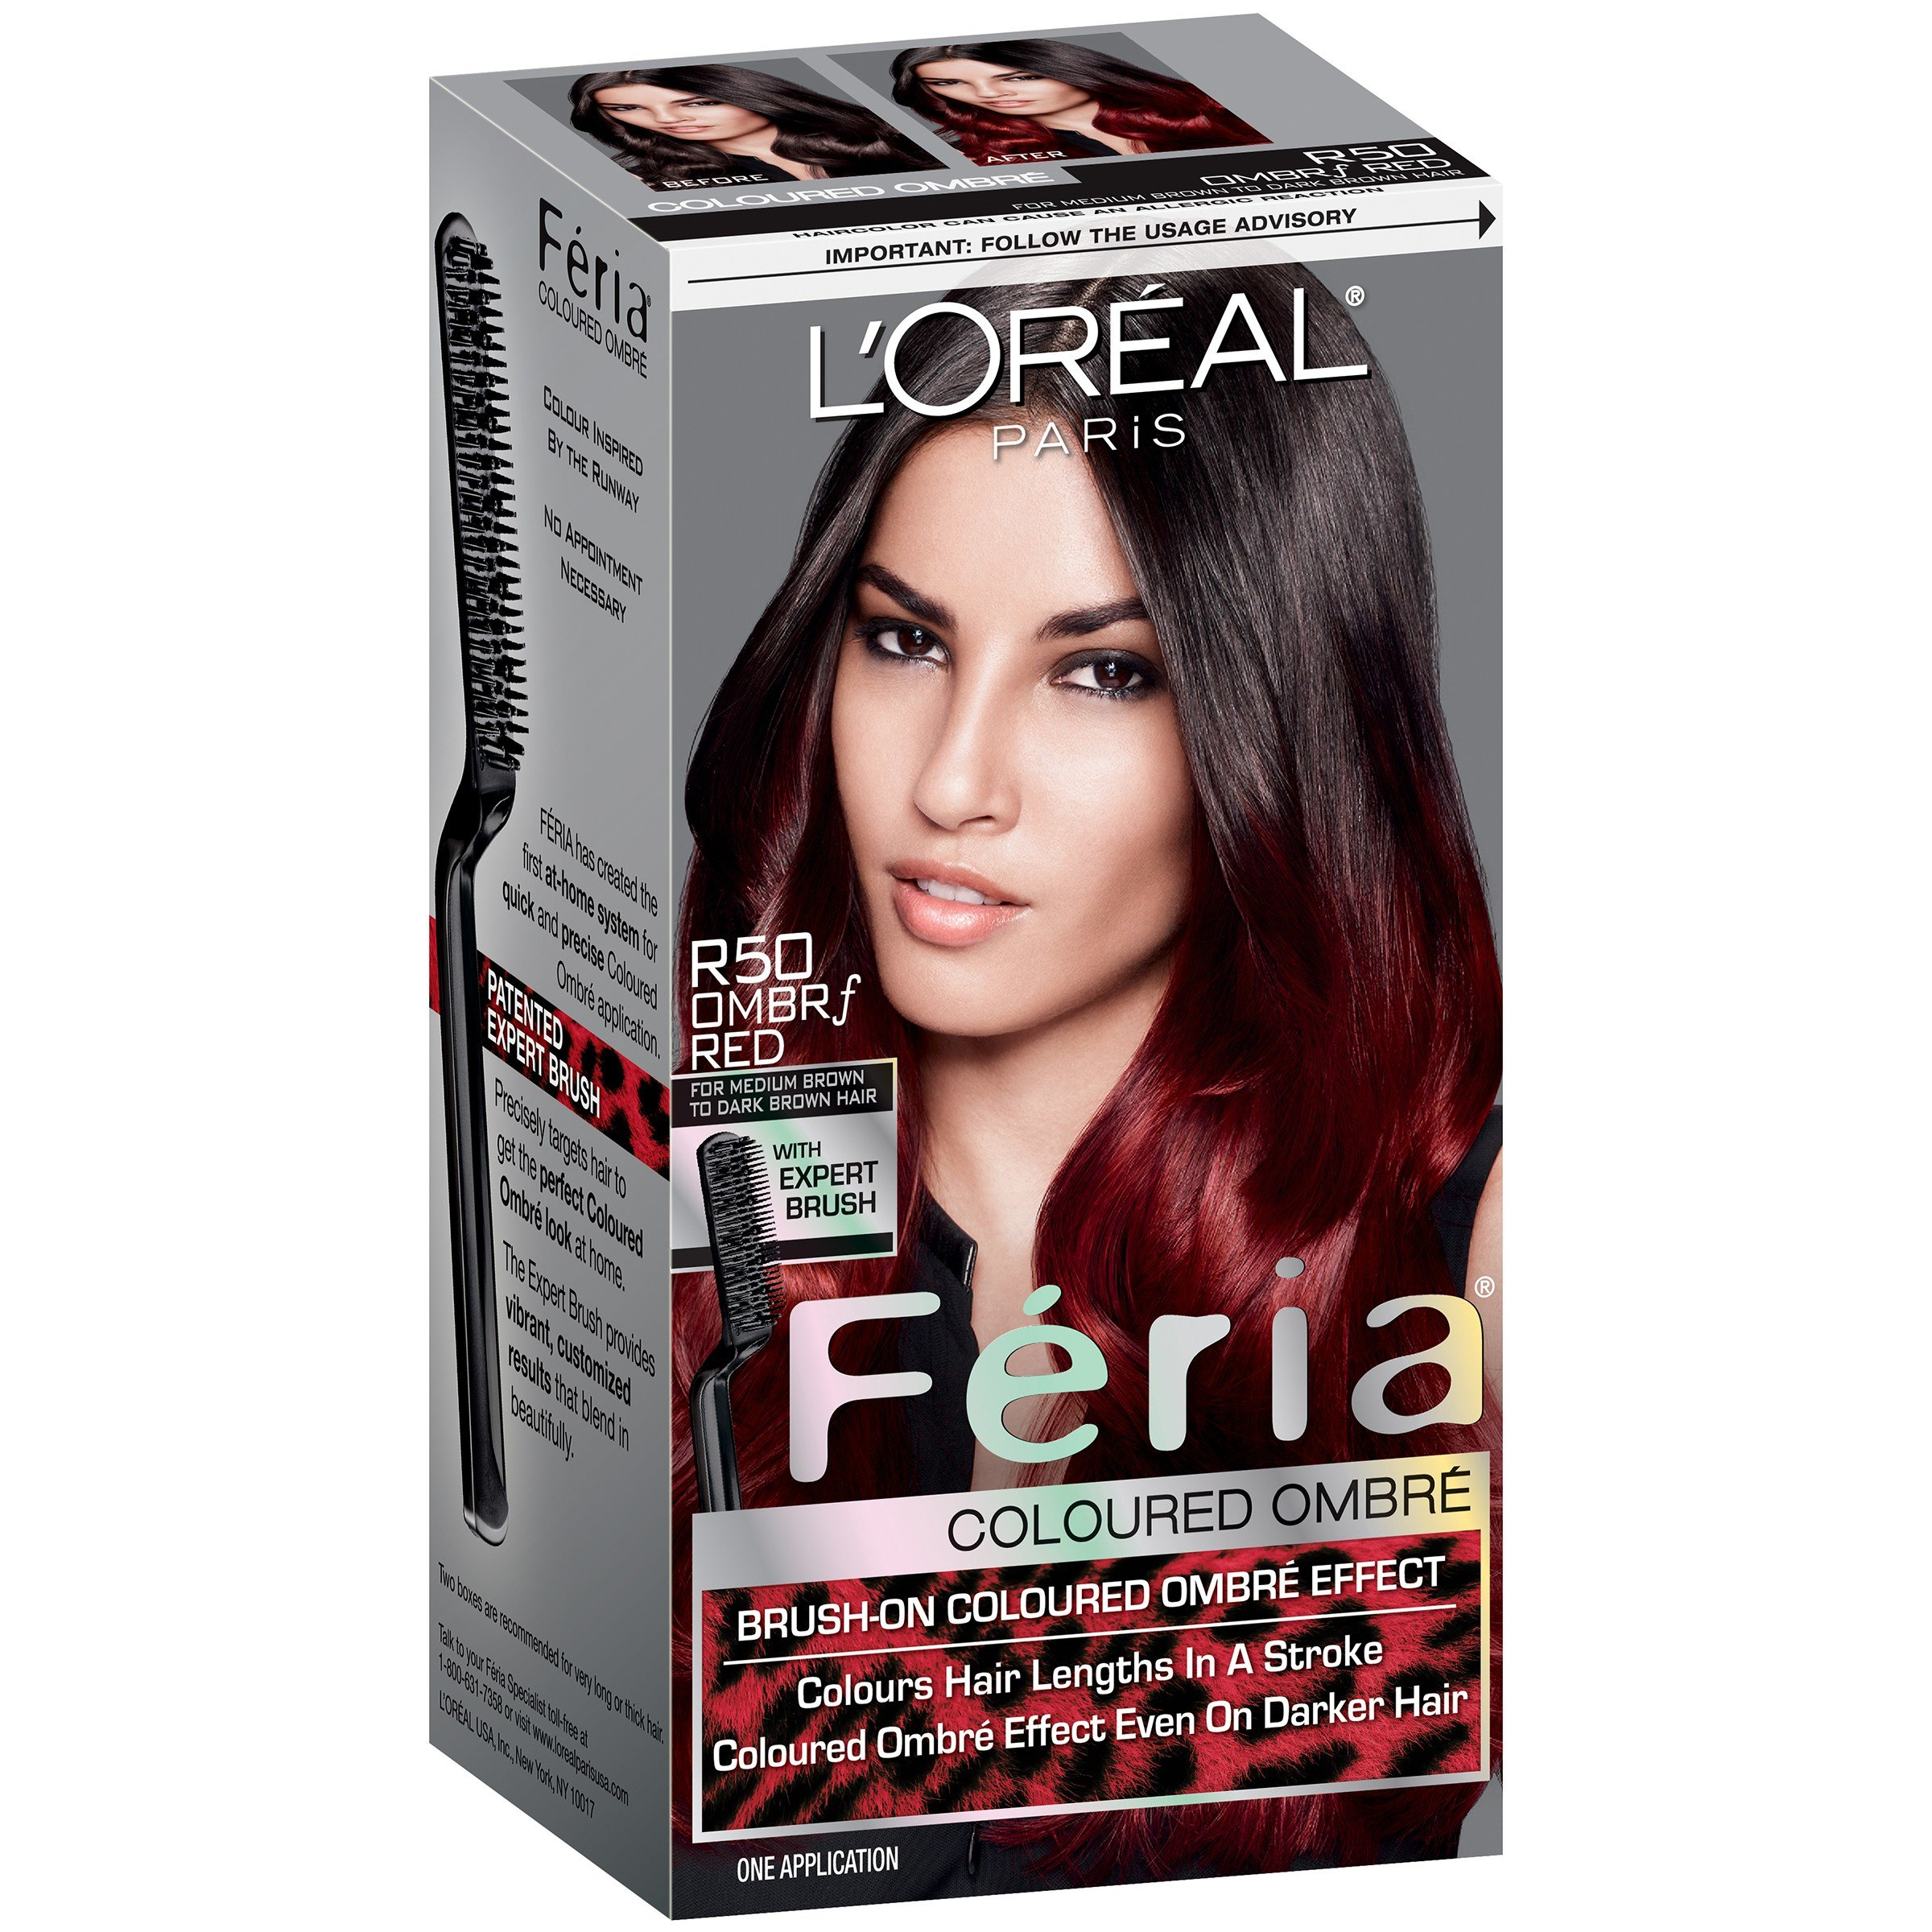 New L Oreal Paris Feria® Coloured Ombre R50 Ombrf Red For Ideas With Pictures